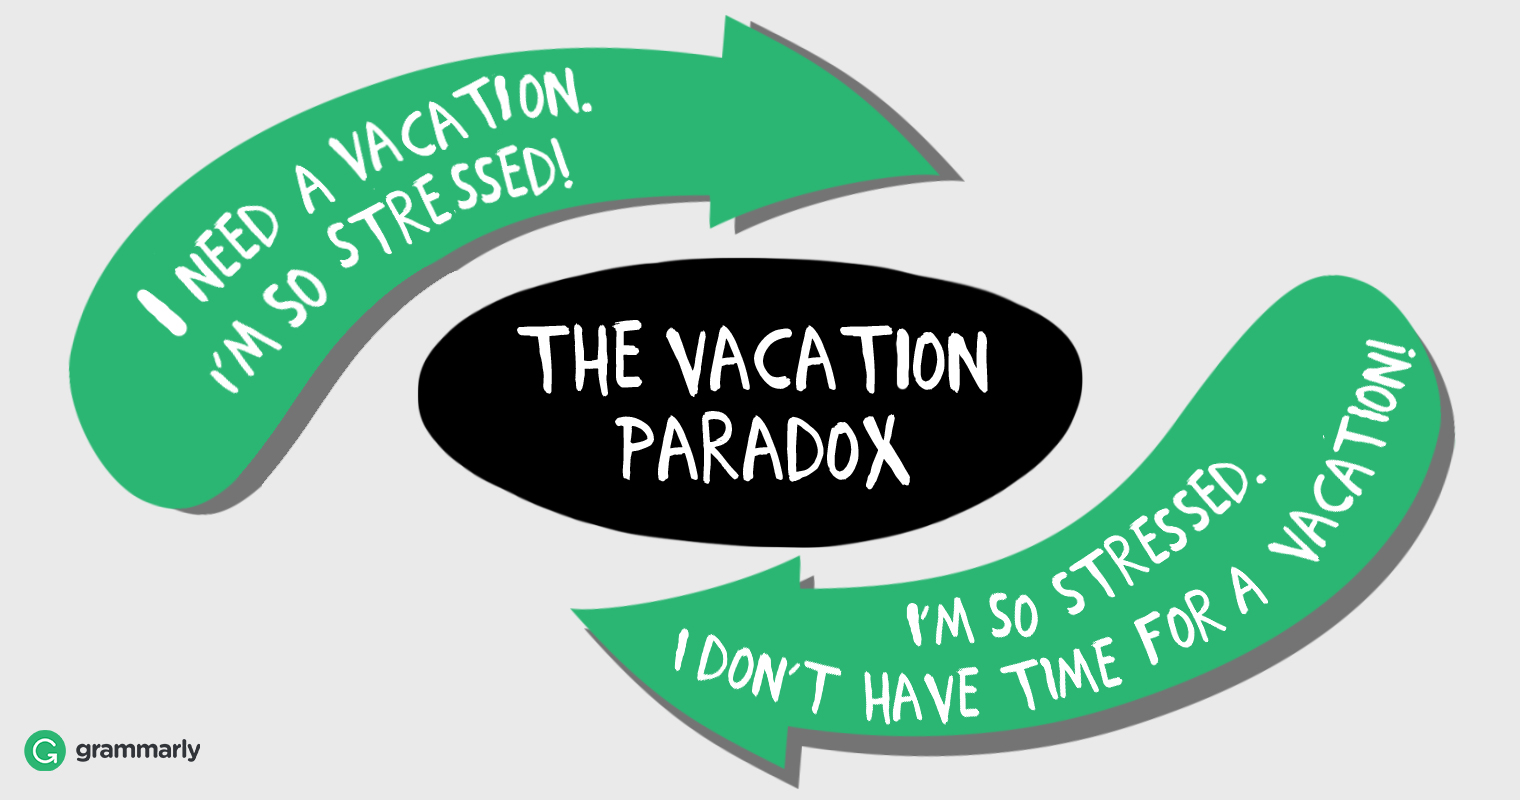 Why You Should Take a Vacation, Even If You're Busy image